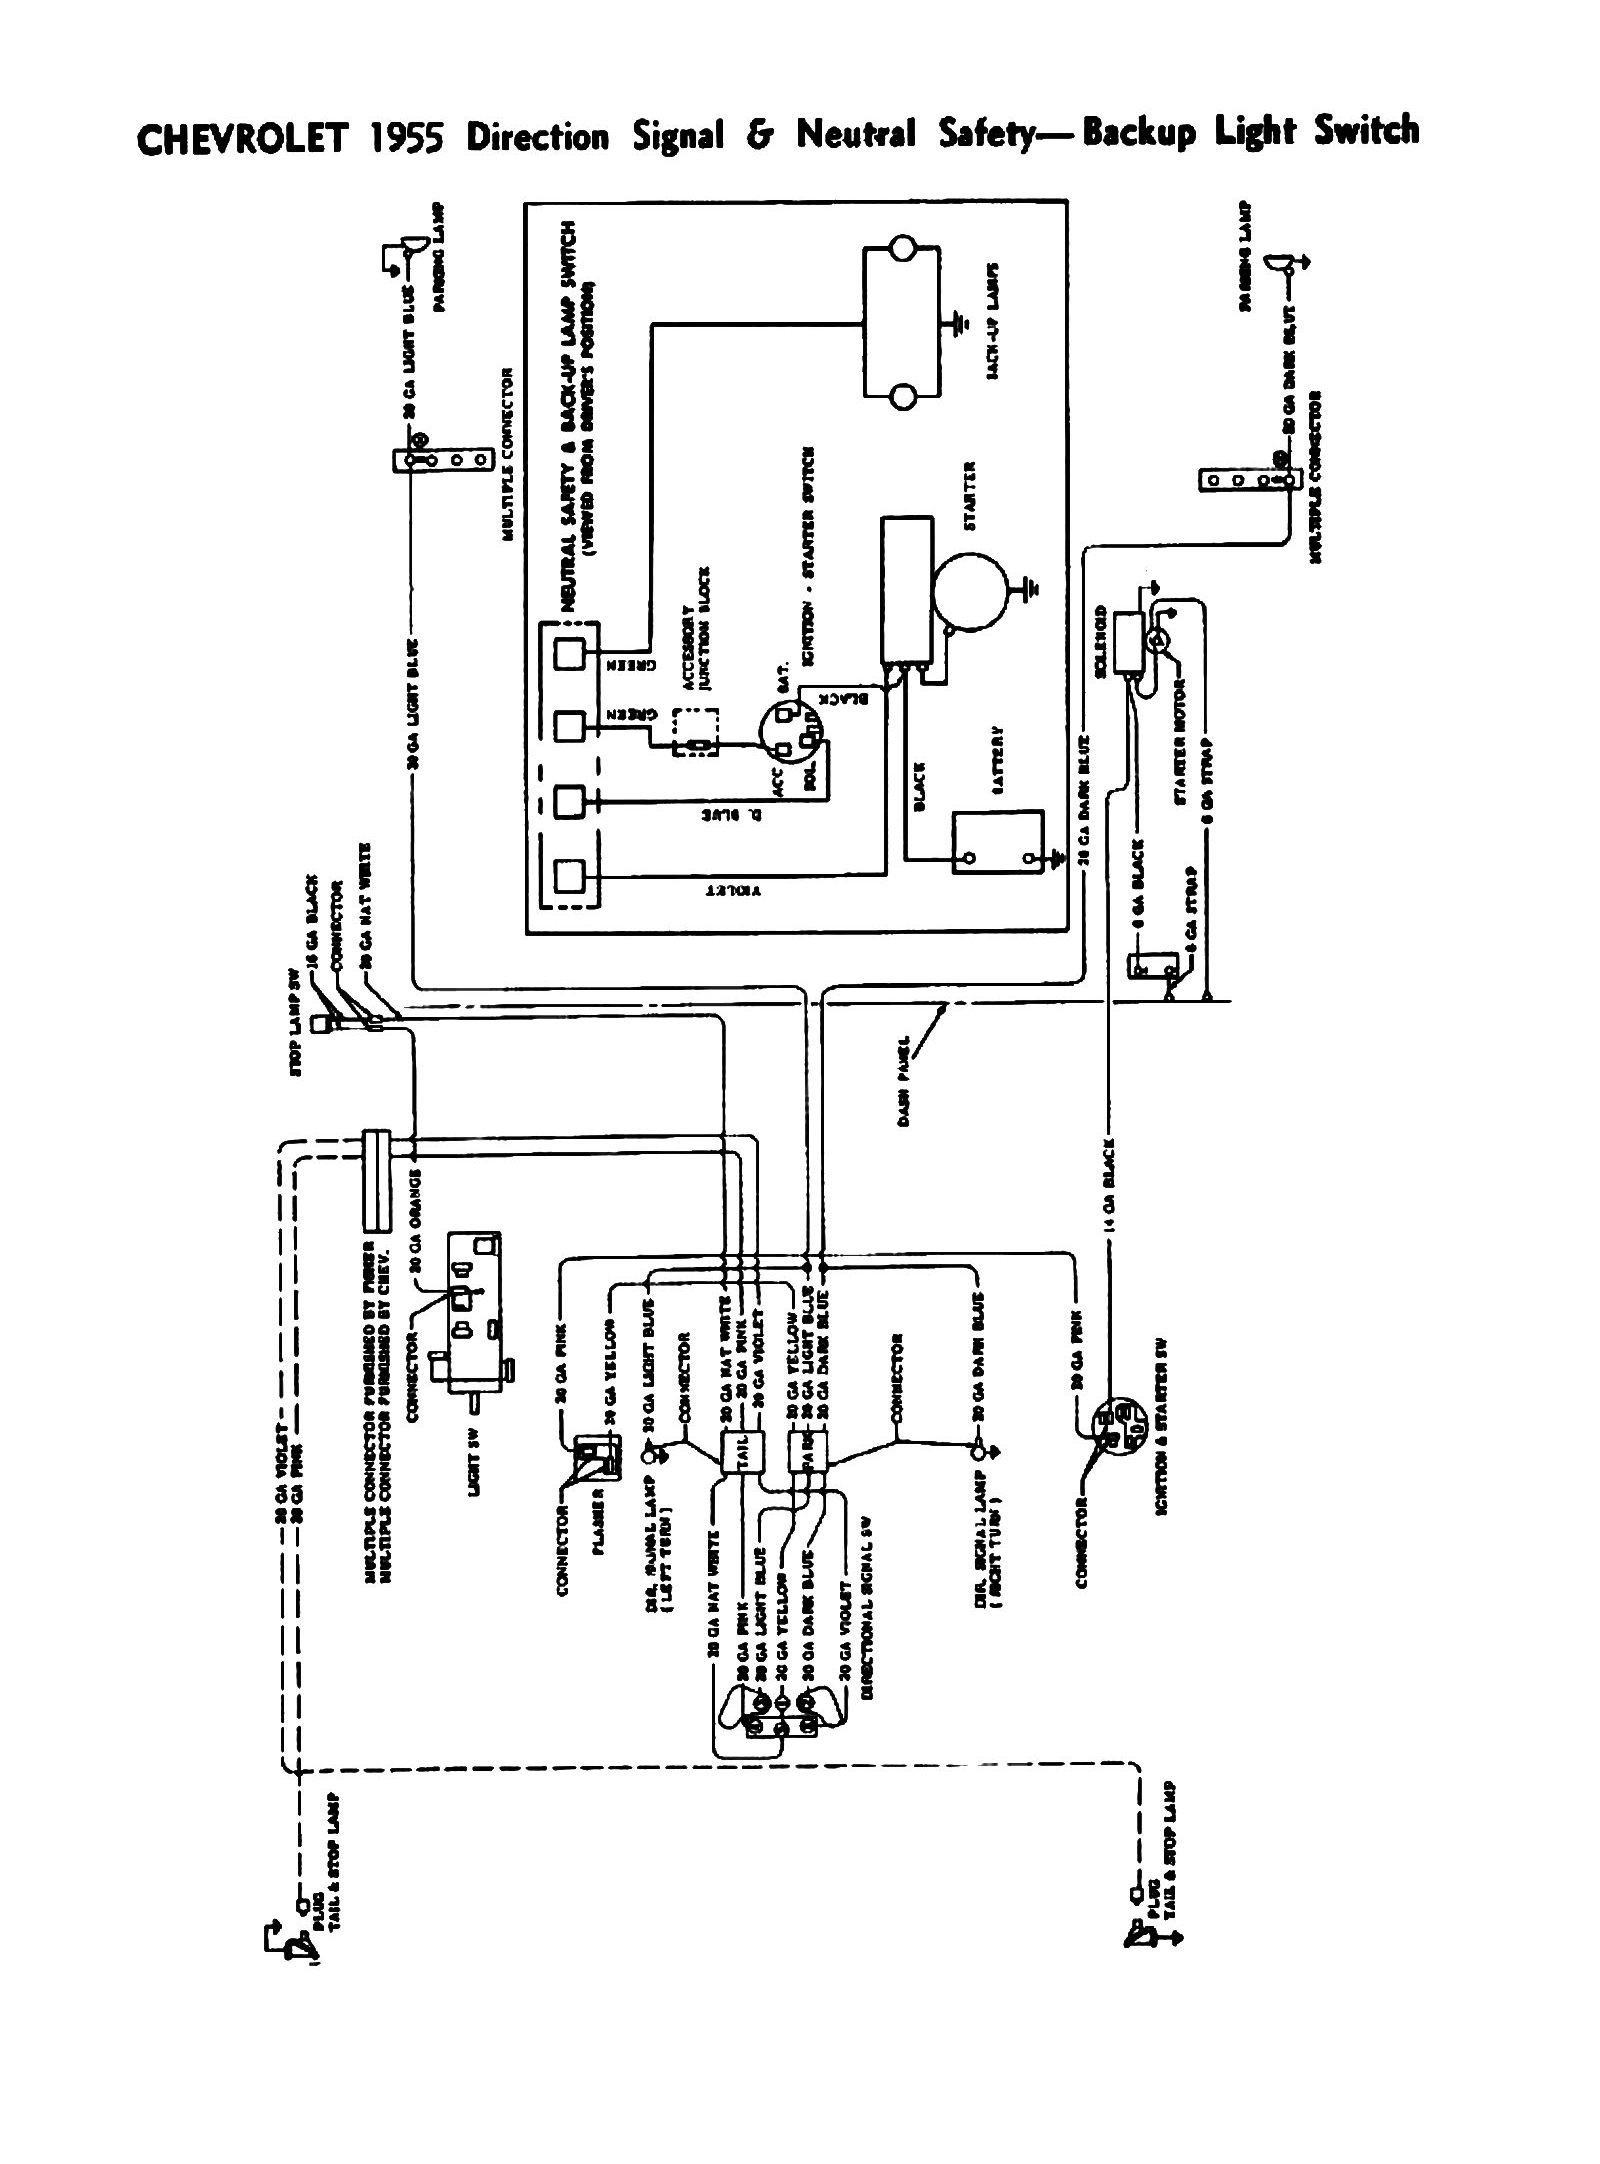 sparton turn signal switch wiring diagram